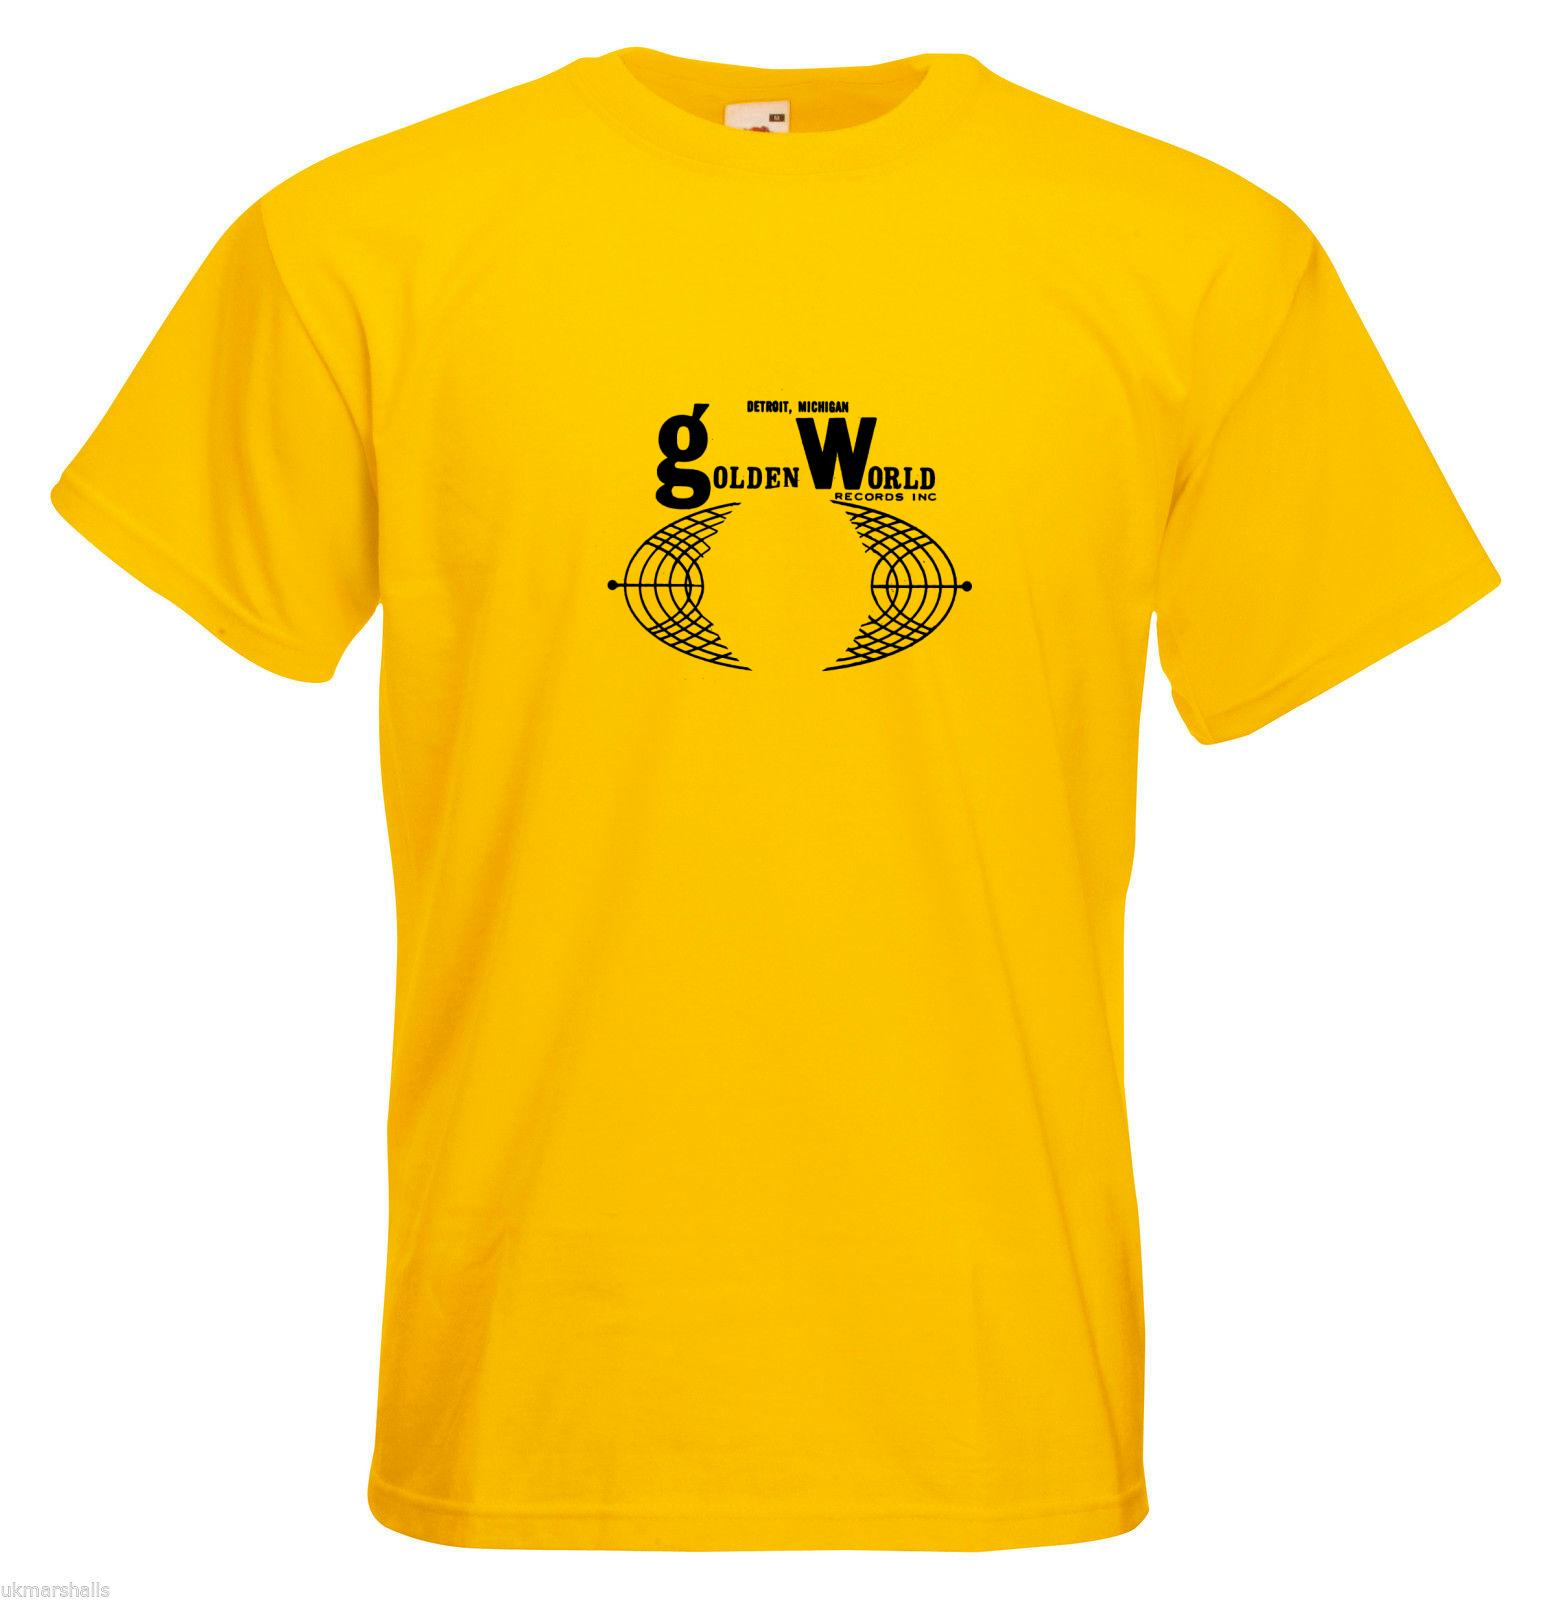 Golden World T-shirt